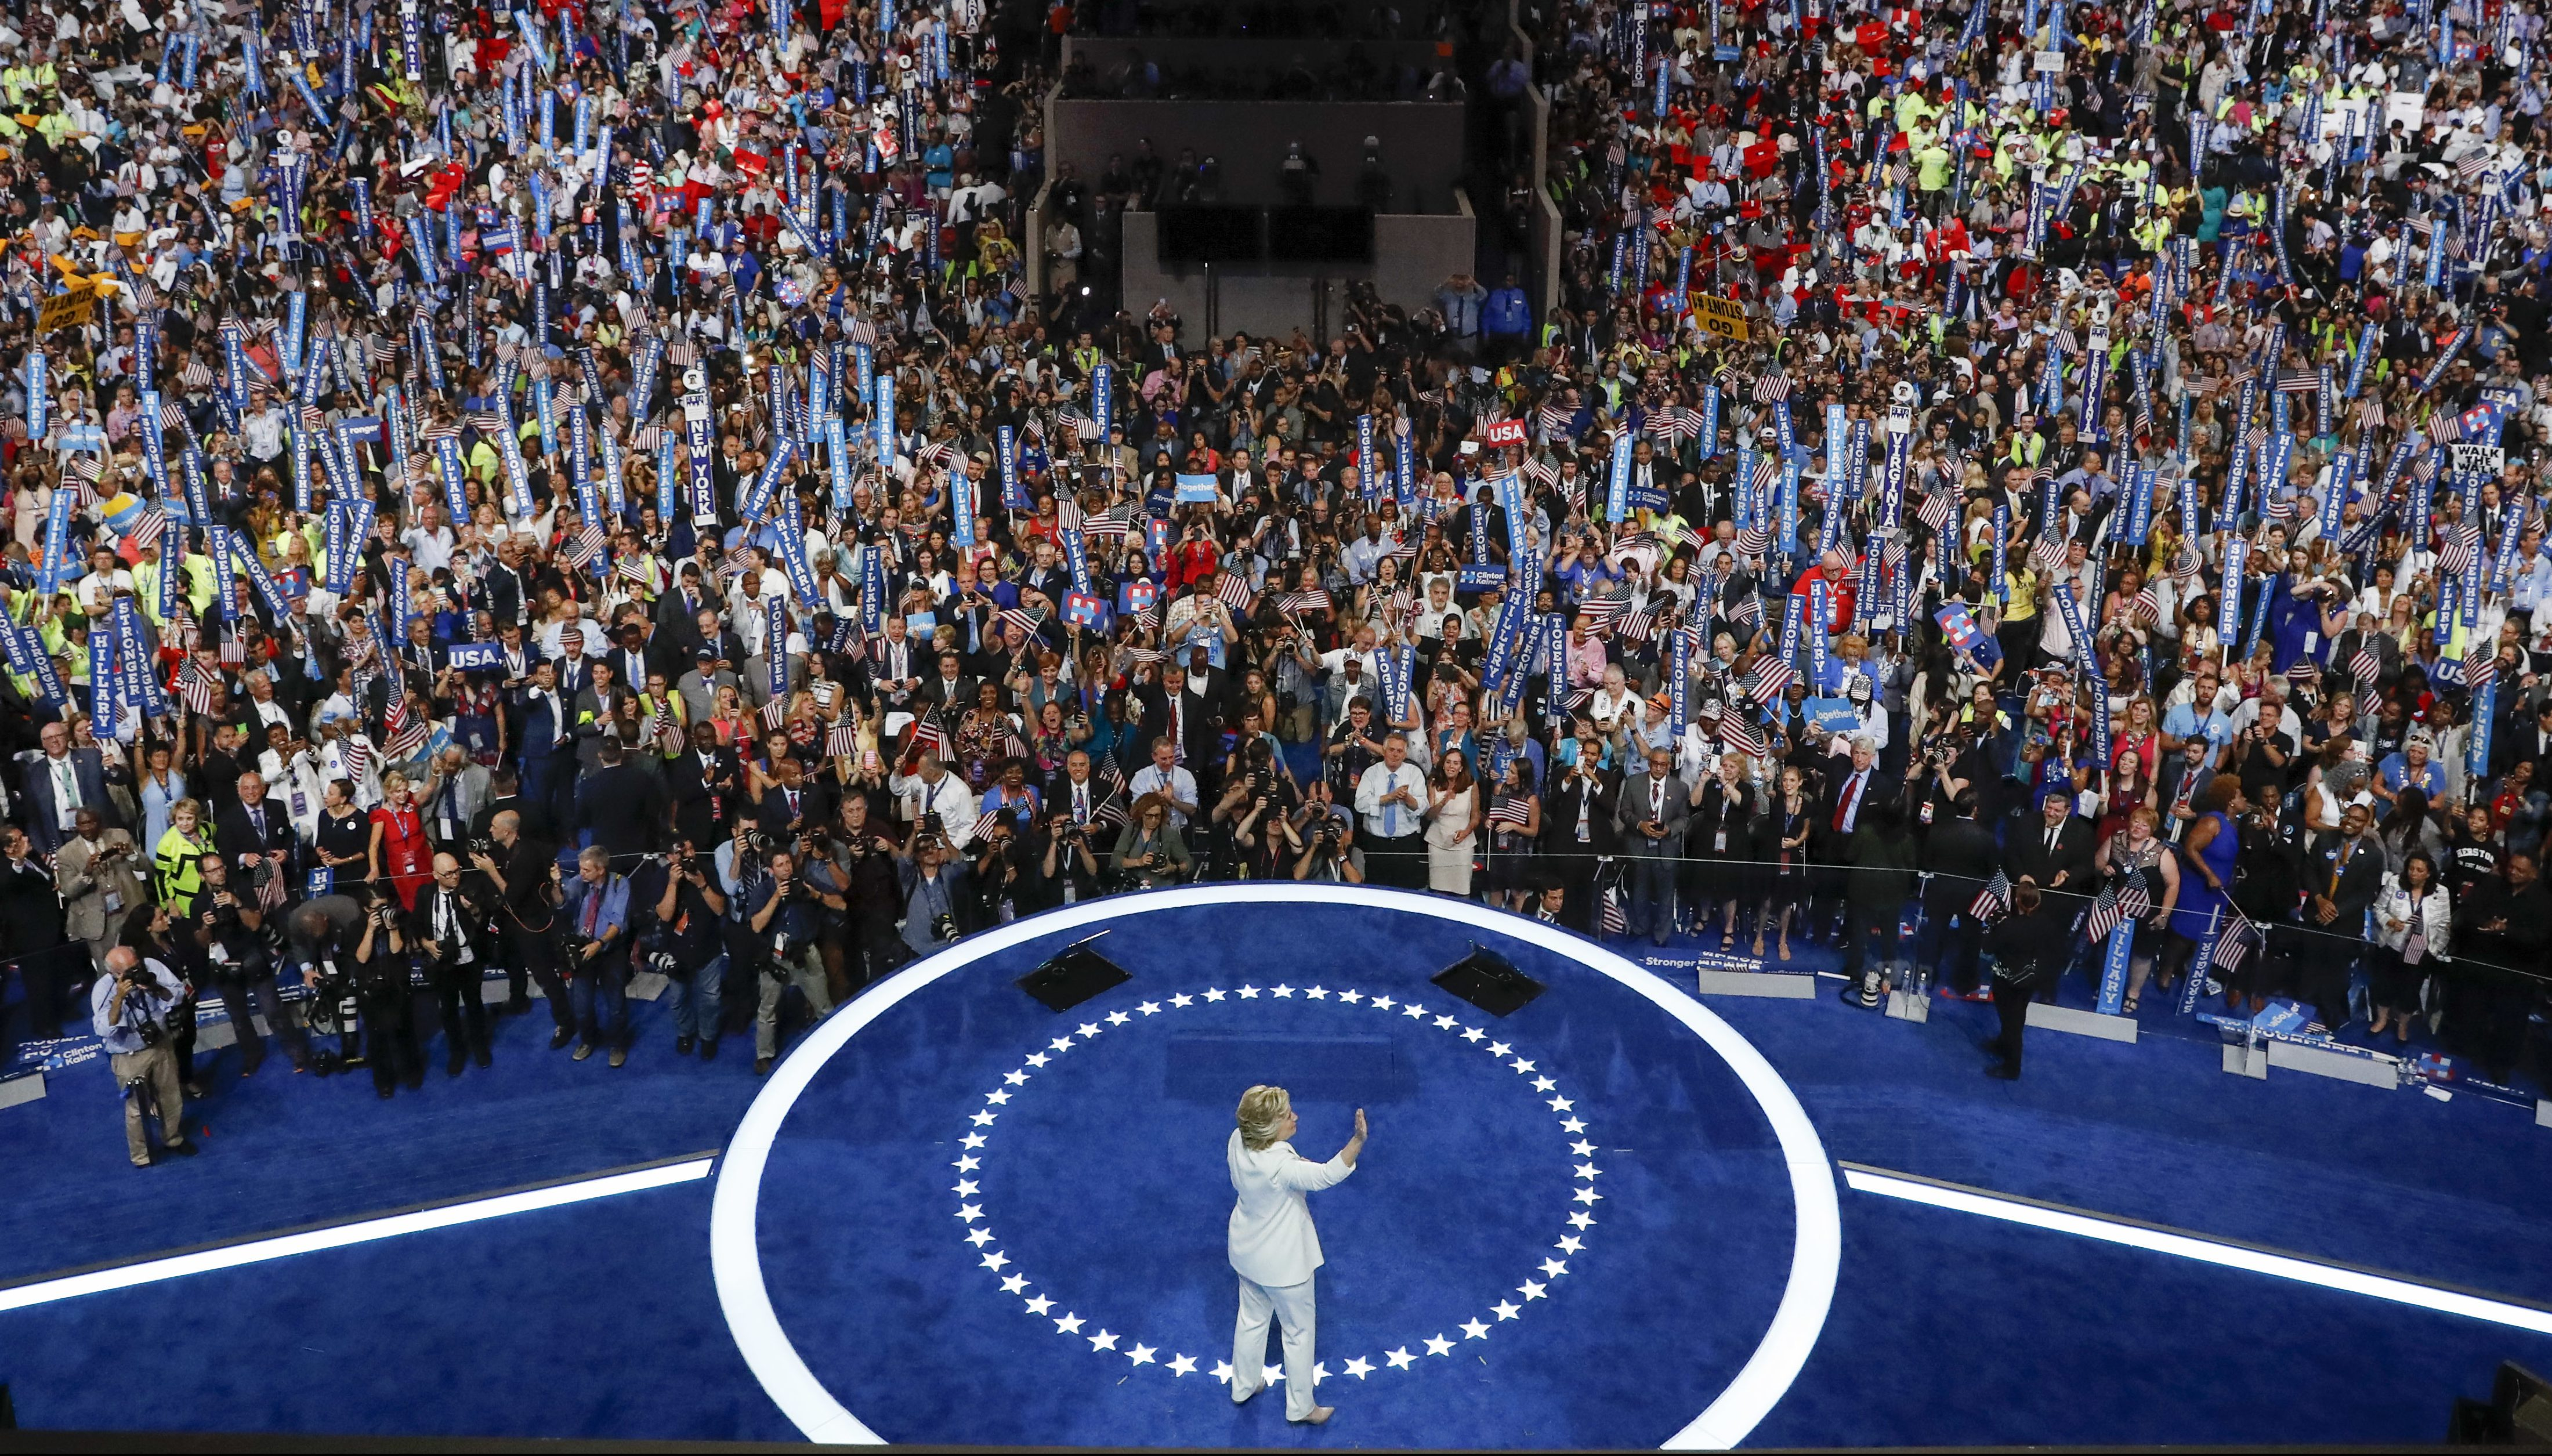 Democratic presidential nominee Hillary Clinton waves to delegates after her speech during the final day of the Democratic National Convention in Philadelphia, Thursday, July 28, 2016.